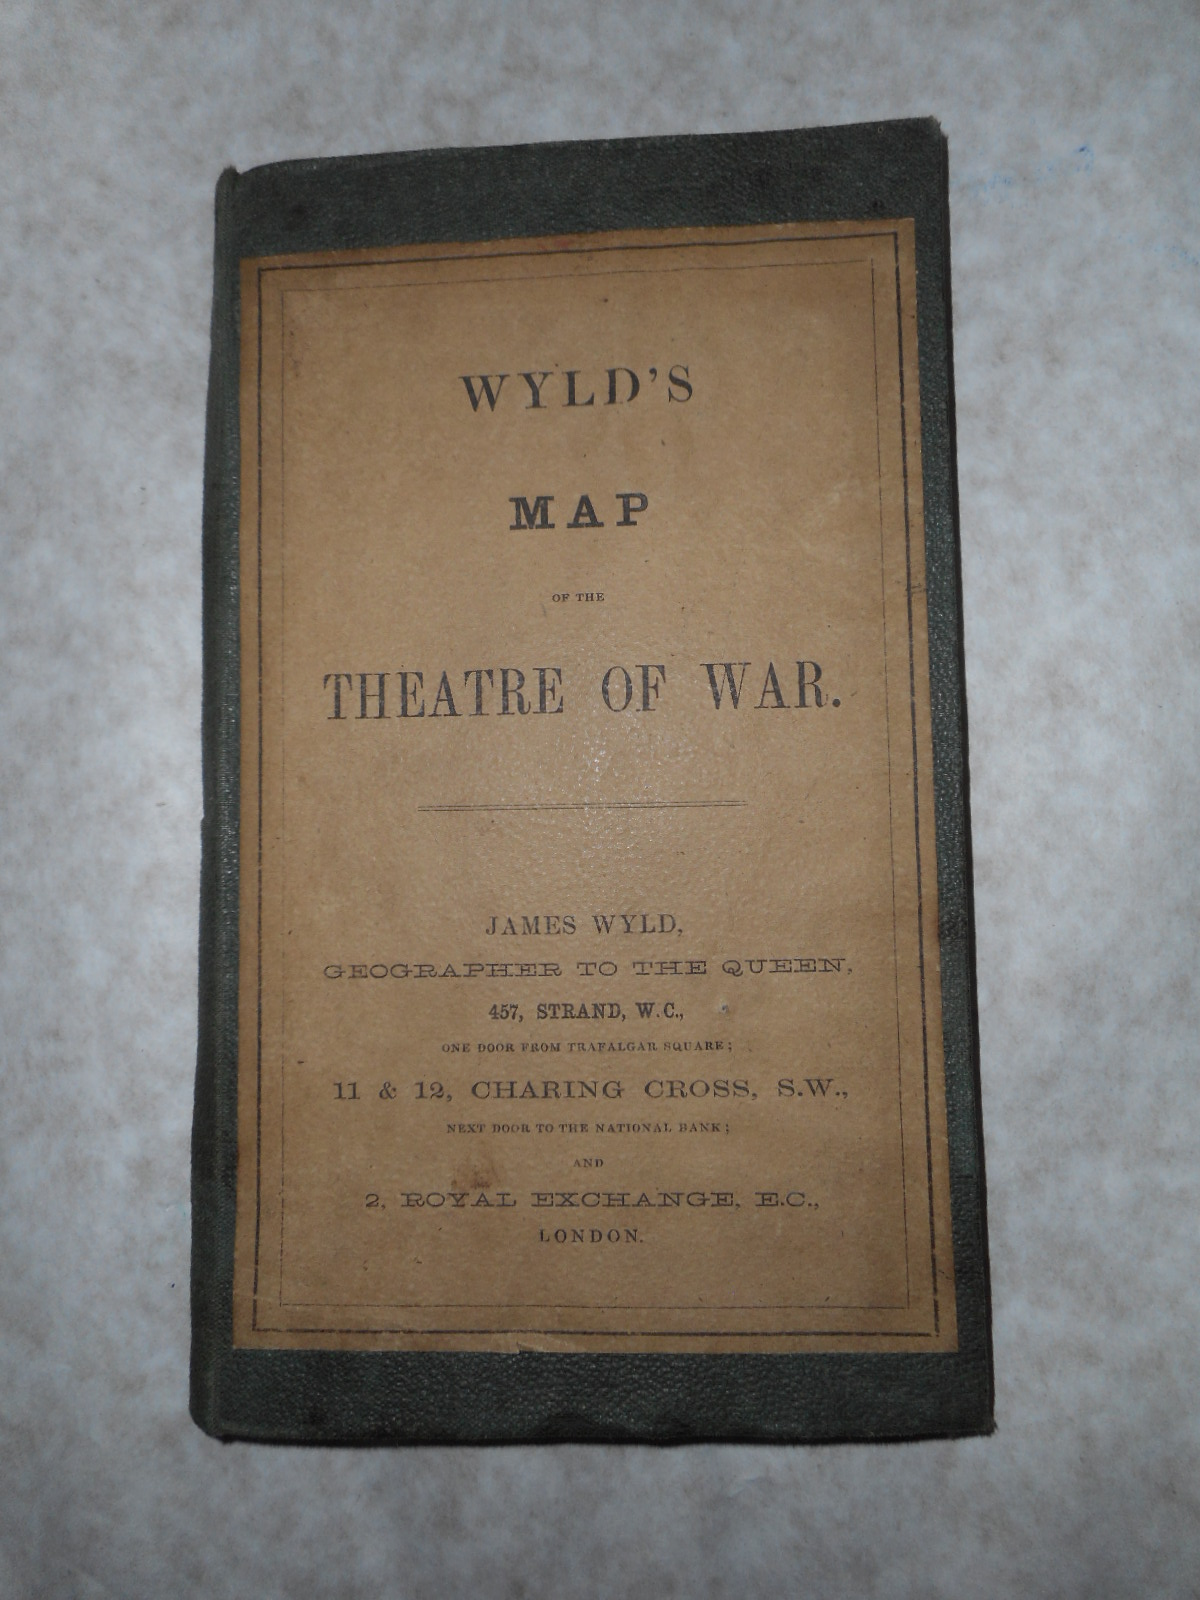 Wyld's Map of the Theatre of War. Wyld's Map of the North-Eastern Frontier of FRANCE Including Belgium and the Rhine